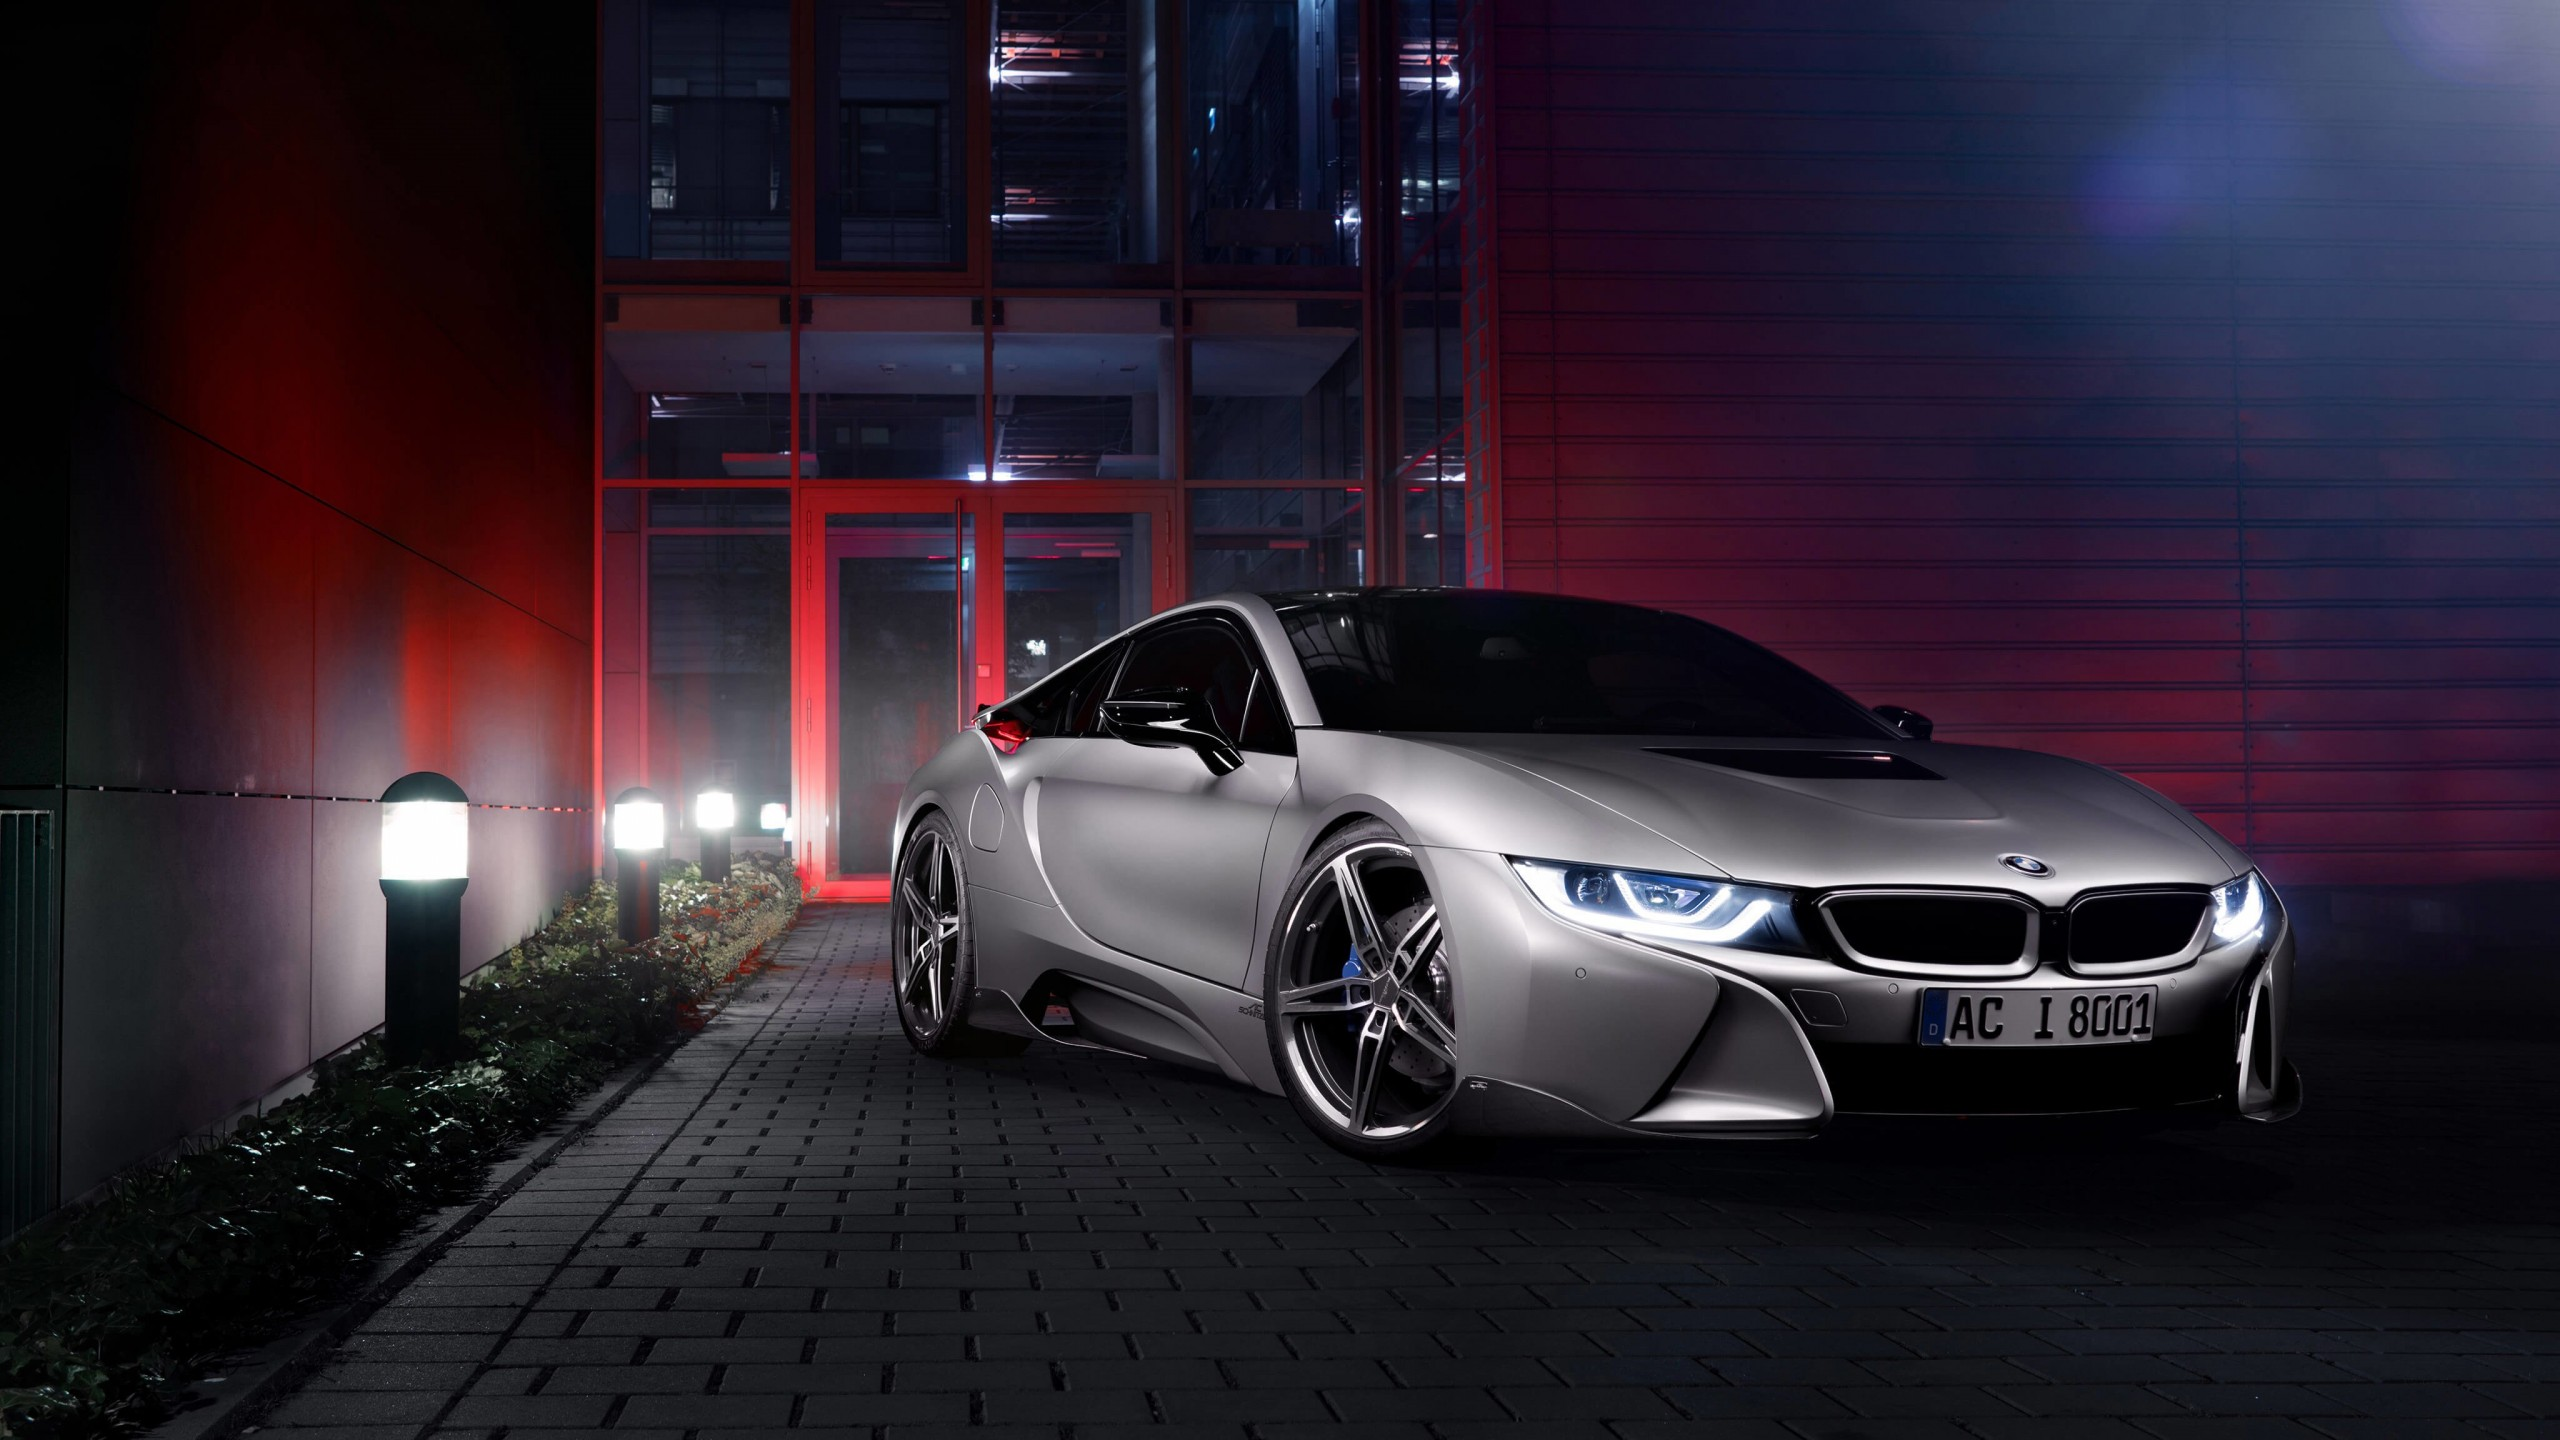 BMW i8 designed by AC Schnitzer Wallpaper for Social Media YouTube Channel Art